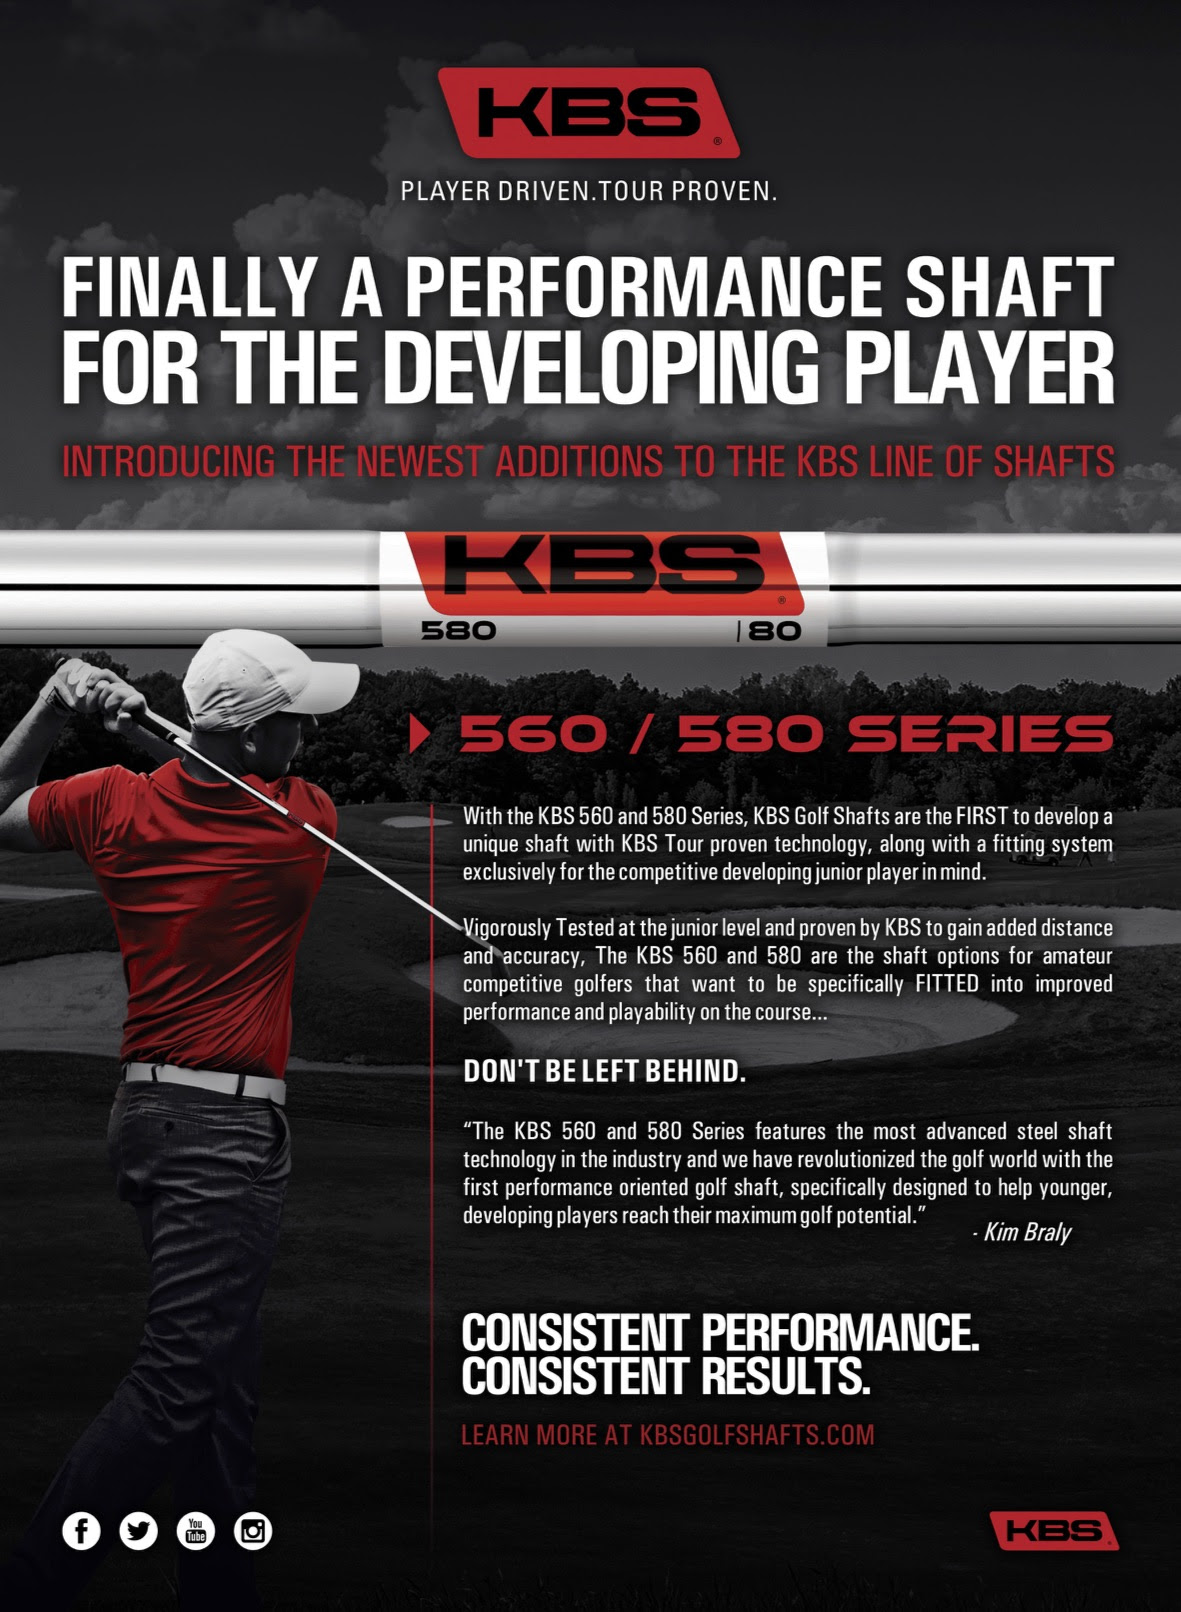 New KBS 560 & 580 shafts geared specifically to the accomplished junior golfer